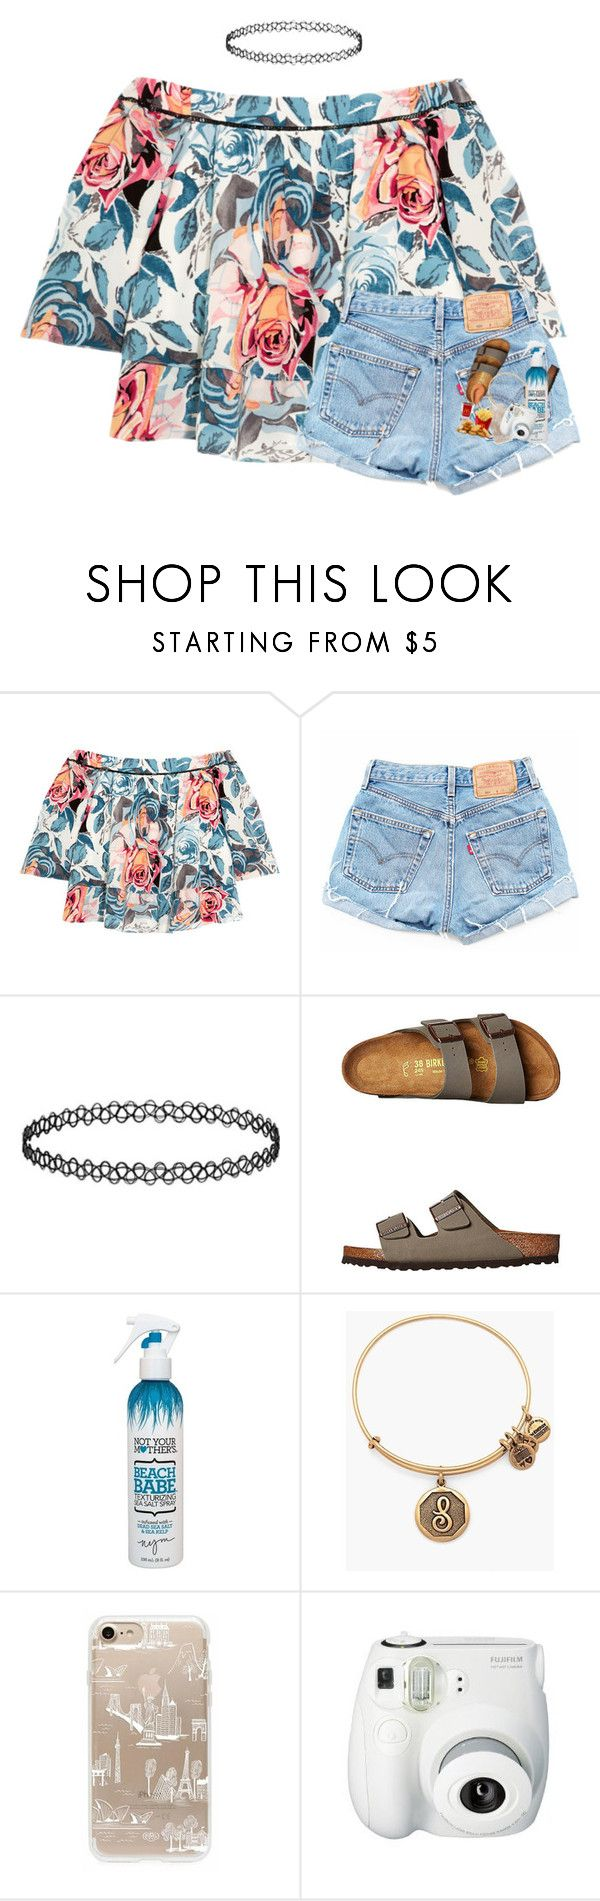 """:("" by morgankailah ❤ liked on Polyvore featuring Elizabeth and James, Birkenstock, Not Your Mother's, Alex and Ani, Rifle Paper Co and Fujifilm"